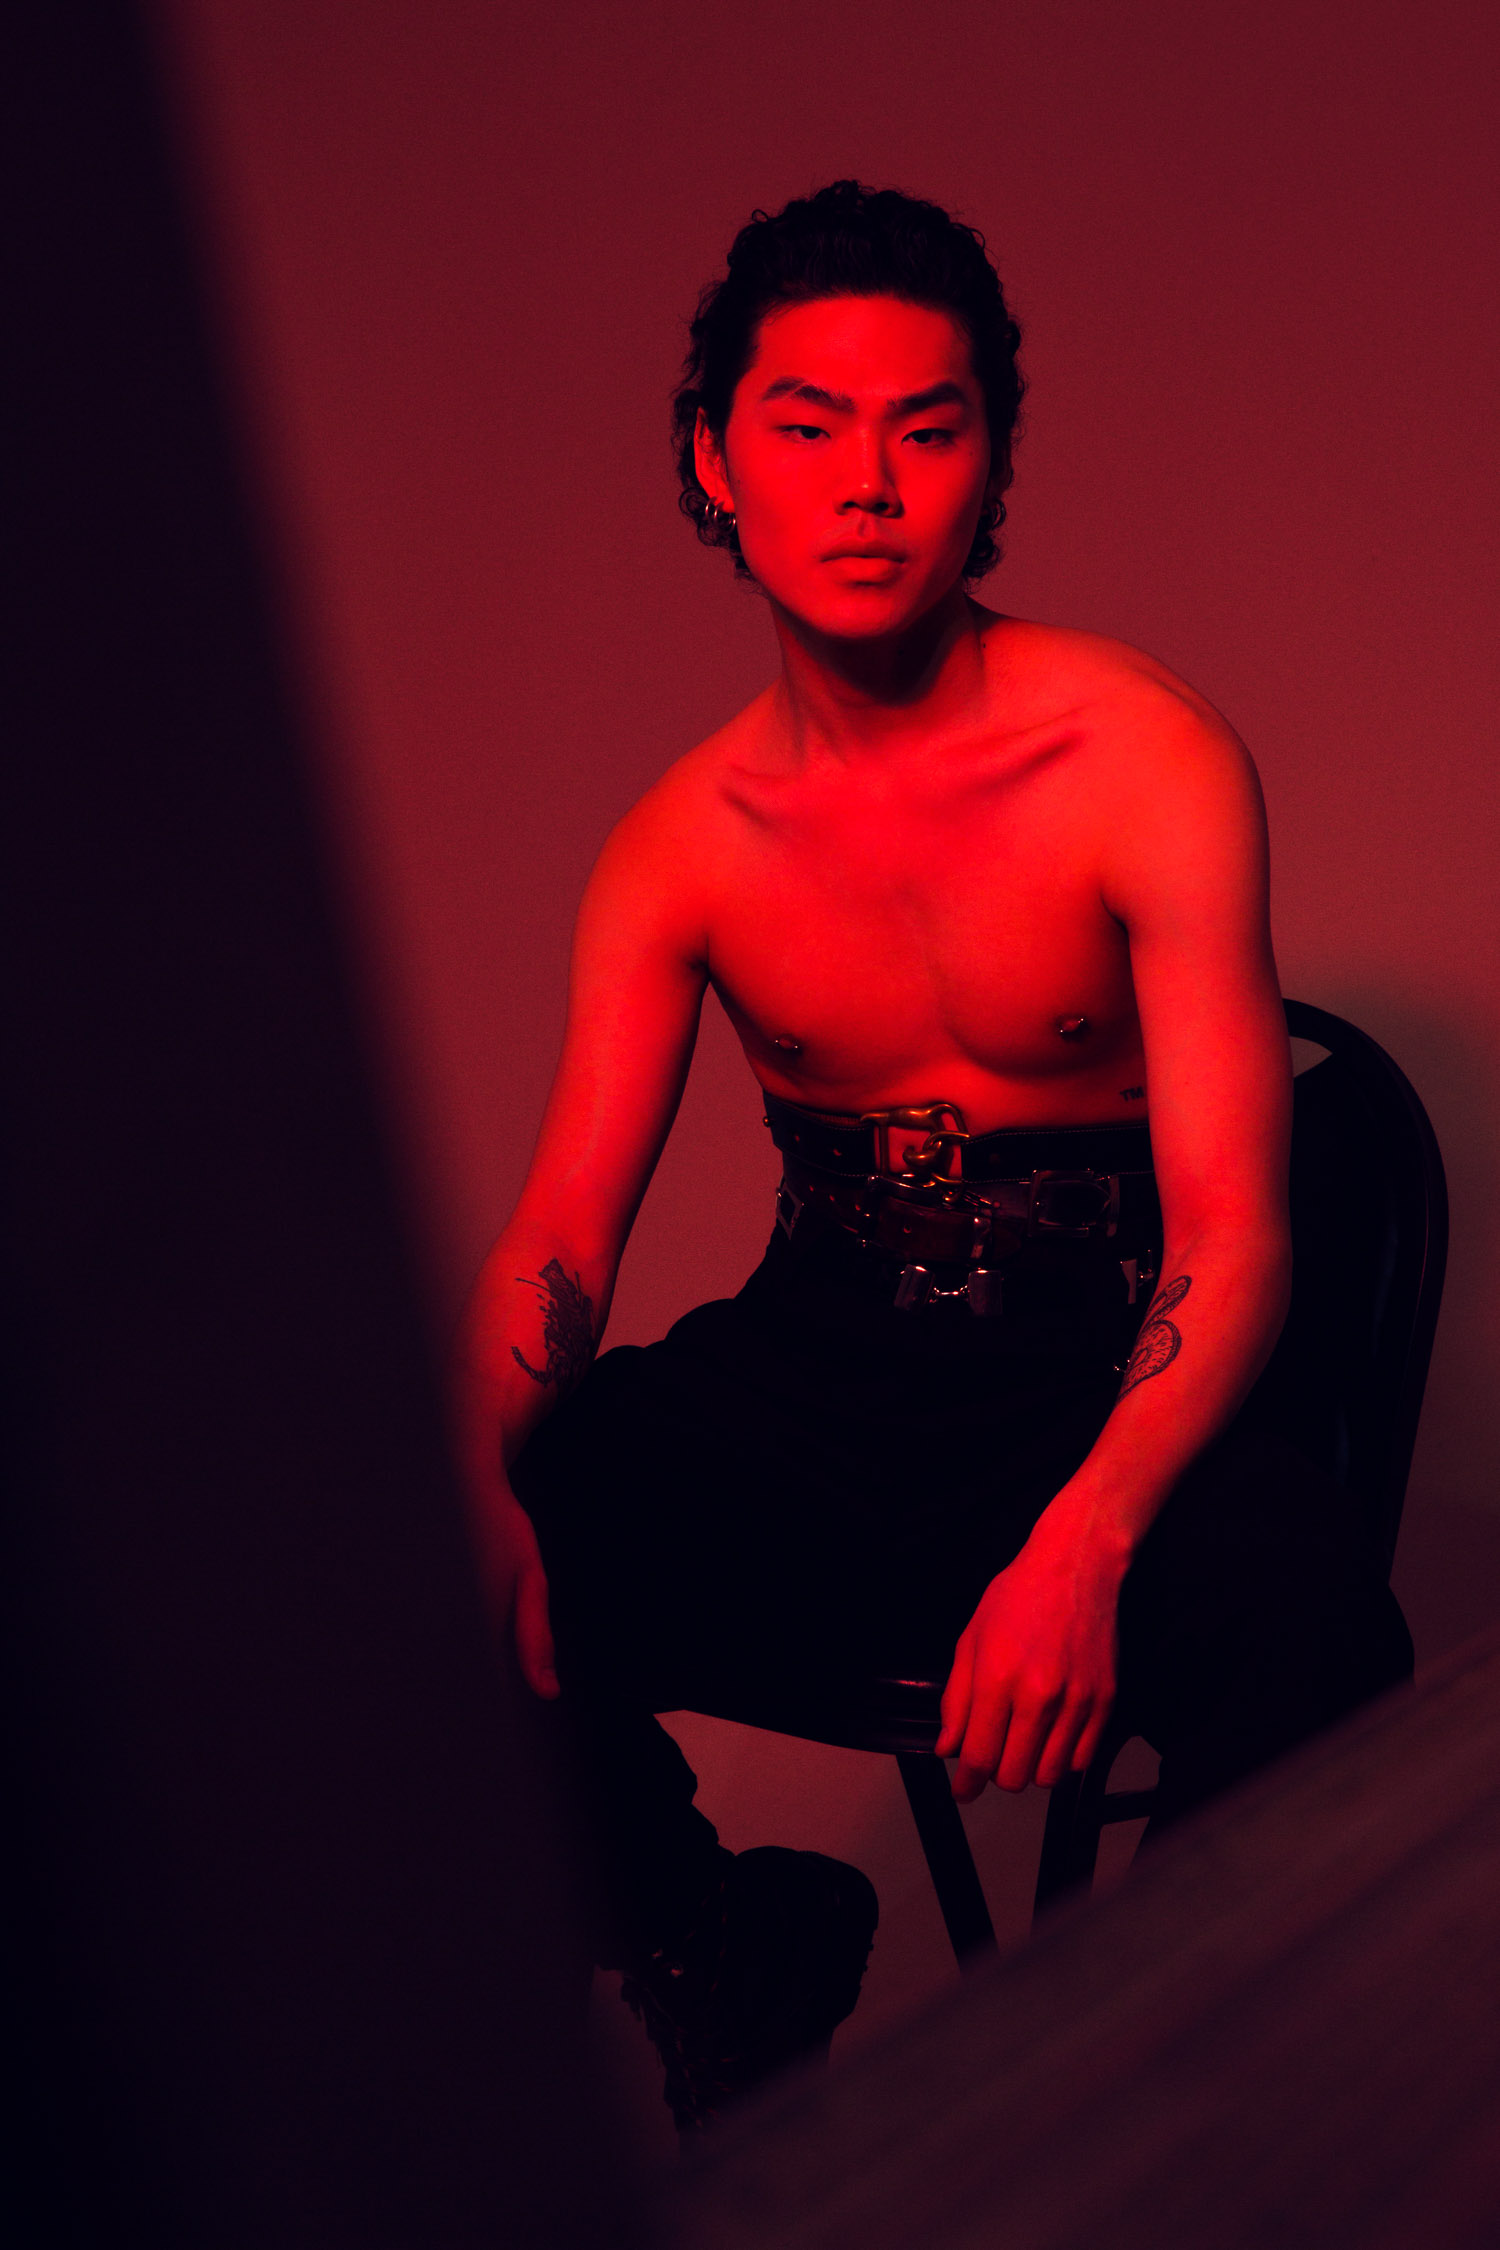 Shirtless man in red light sitting on a chair.